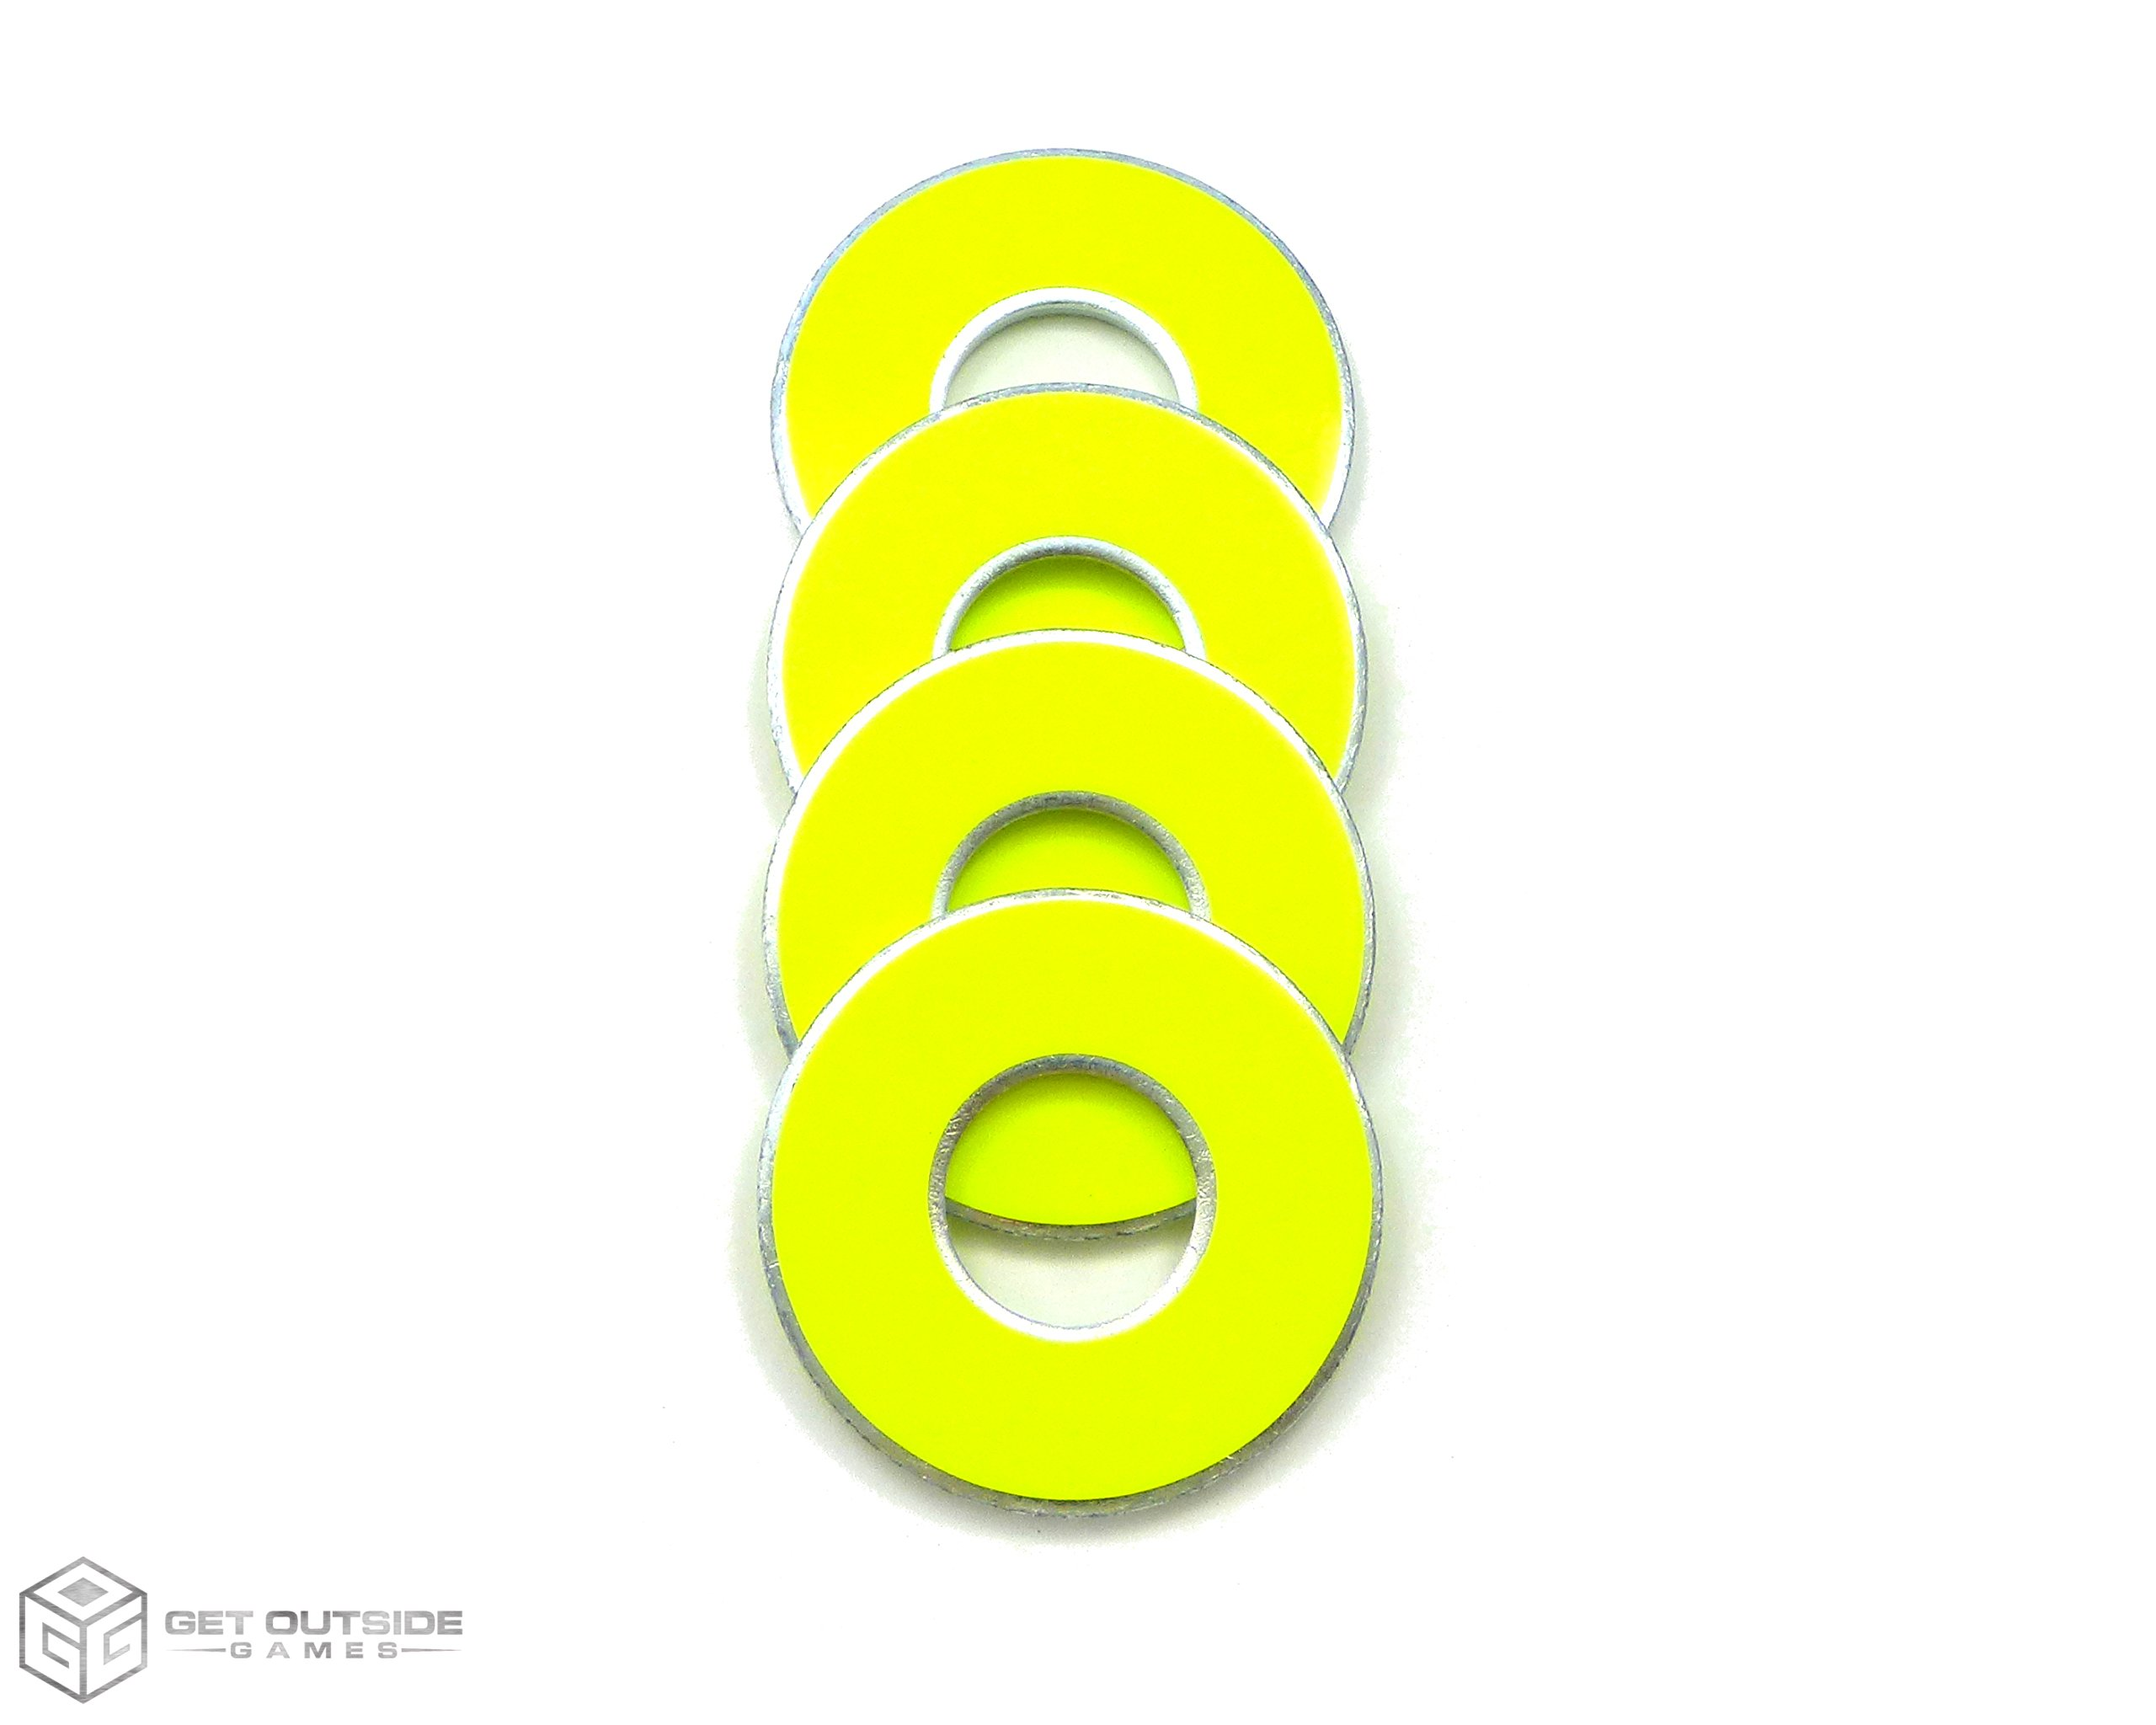 Get Outside Games 4 Neon Fluorescent VVashers - Washer Toss/Washer Game Washers - 5 Colors (Yellow, 4 VVashers with Container) by Get Outside Games